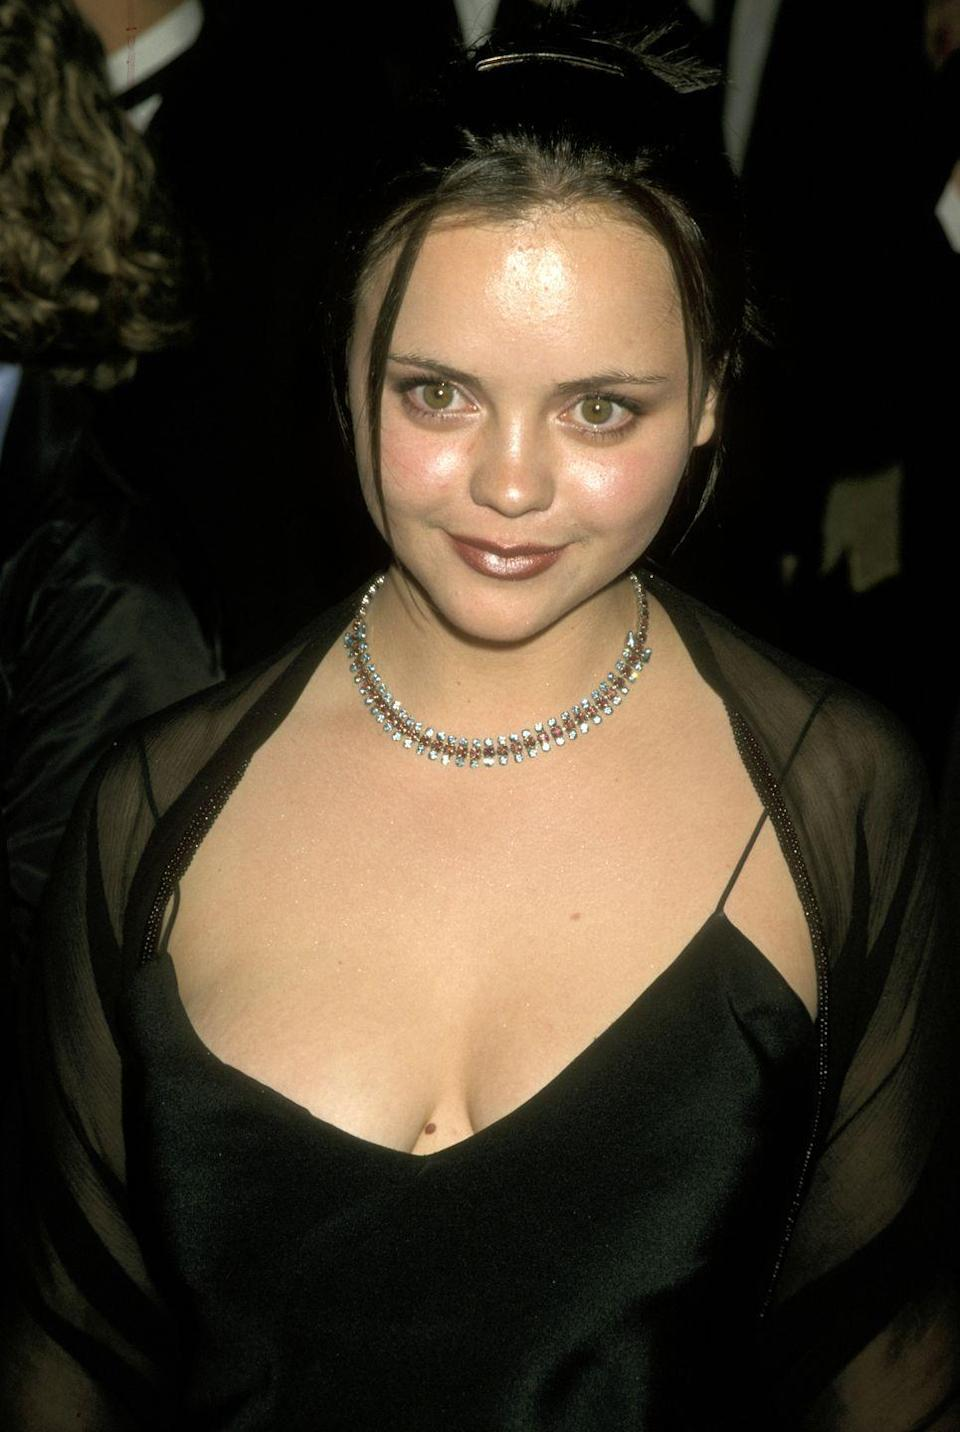 <p>There may not be an official name for this style, but everyone in the '90s was guilty of it: Two tiny strands, just lingering at the front of the face.</p>